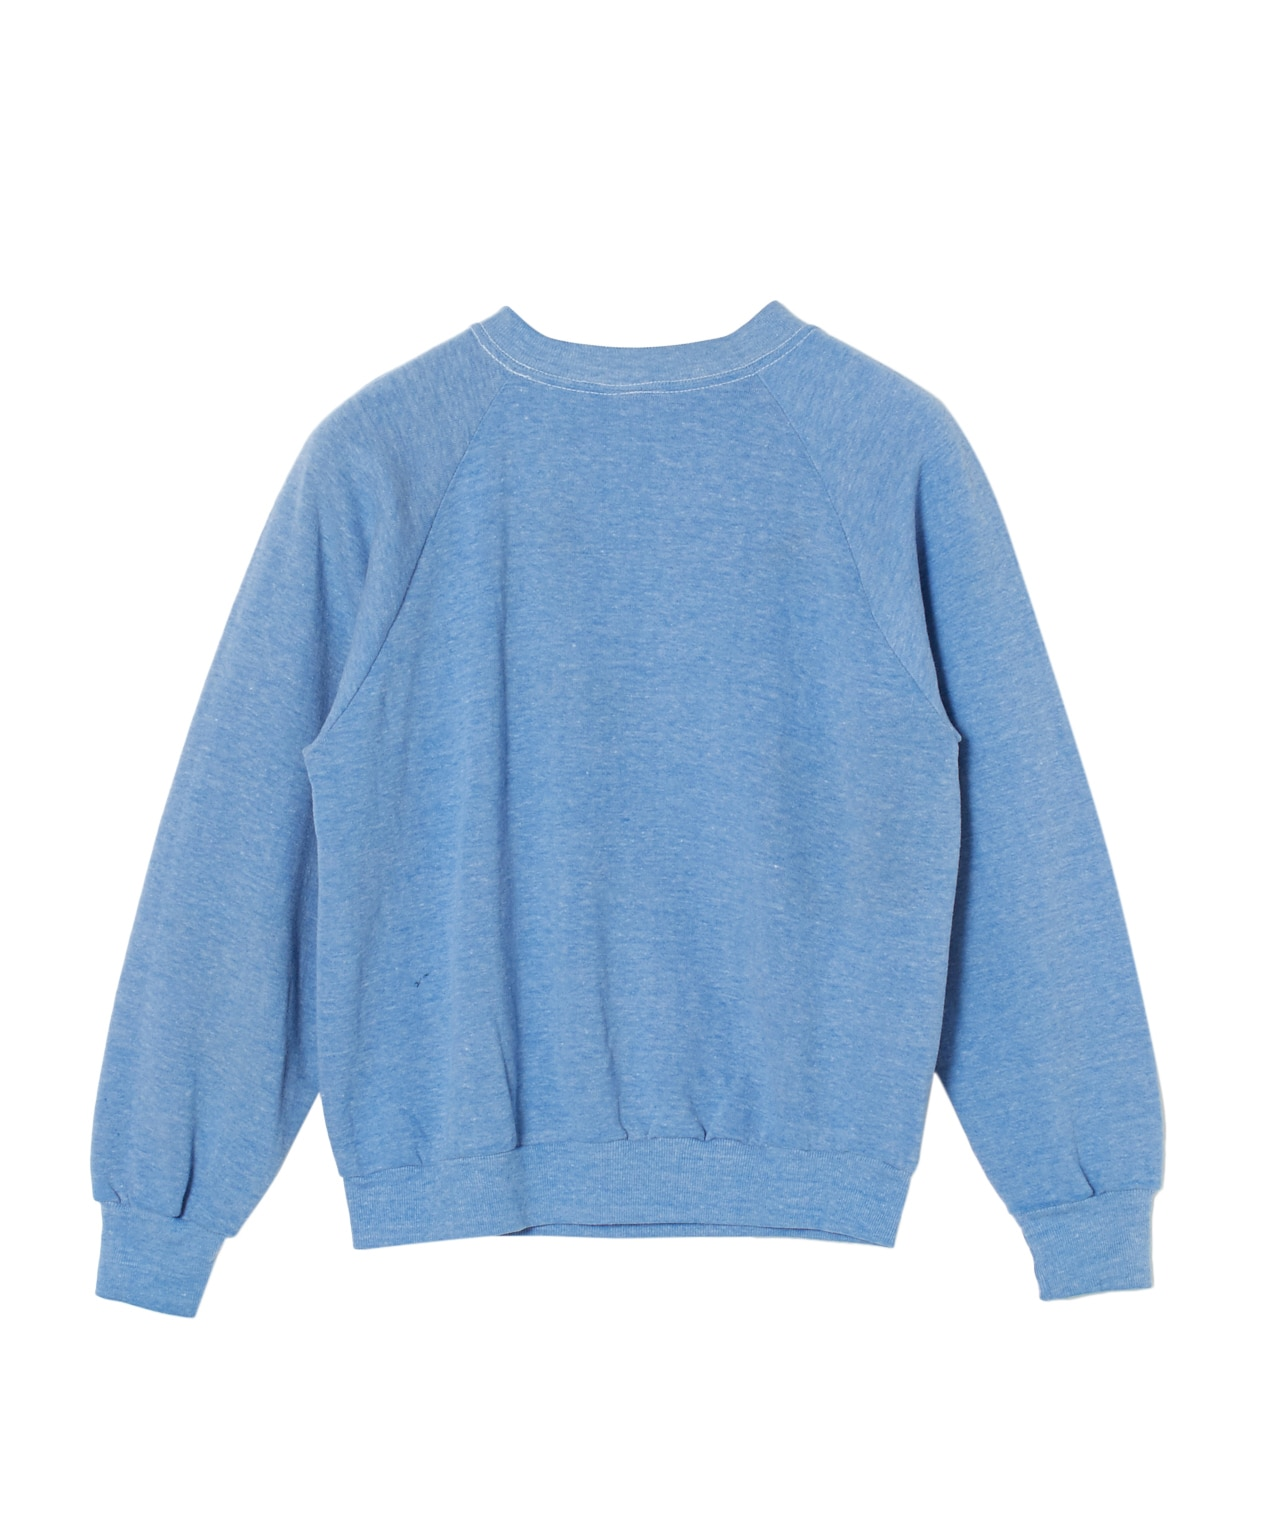 USED/UNKNOWN BRAND PLAIN SWEAT SHIRT 詳細画像 BLUE 2